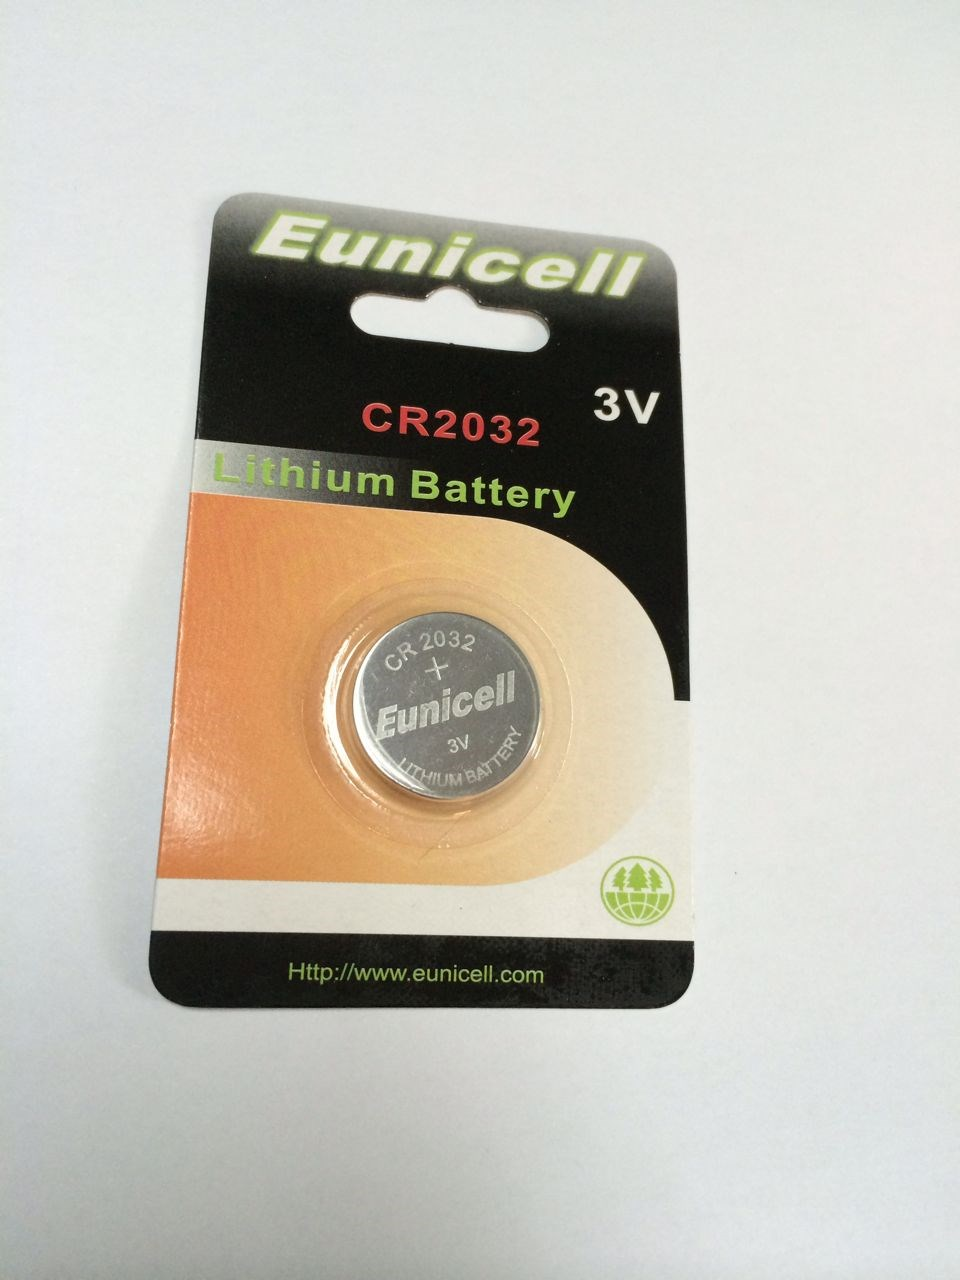 eunicell lithium 3v button cell cr2032 buy cr2032 3v. Black Bedroom Furniture Sets. Home Design Ideas